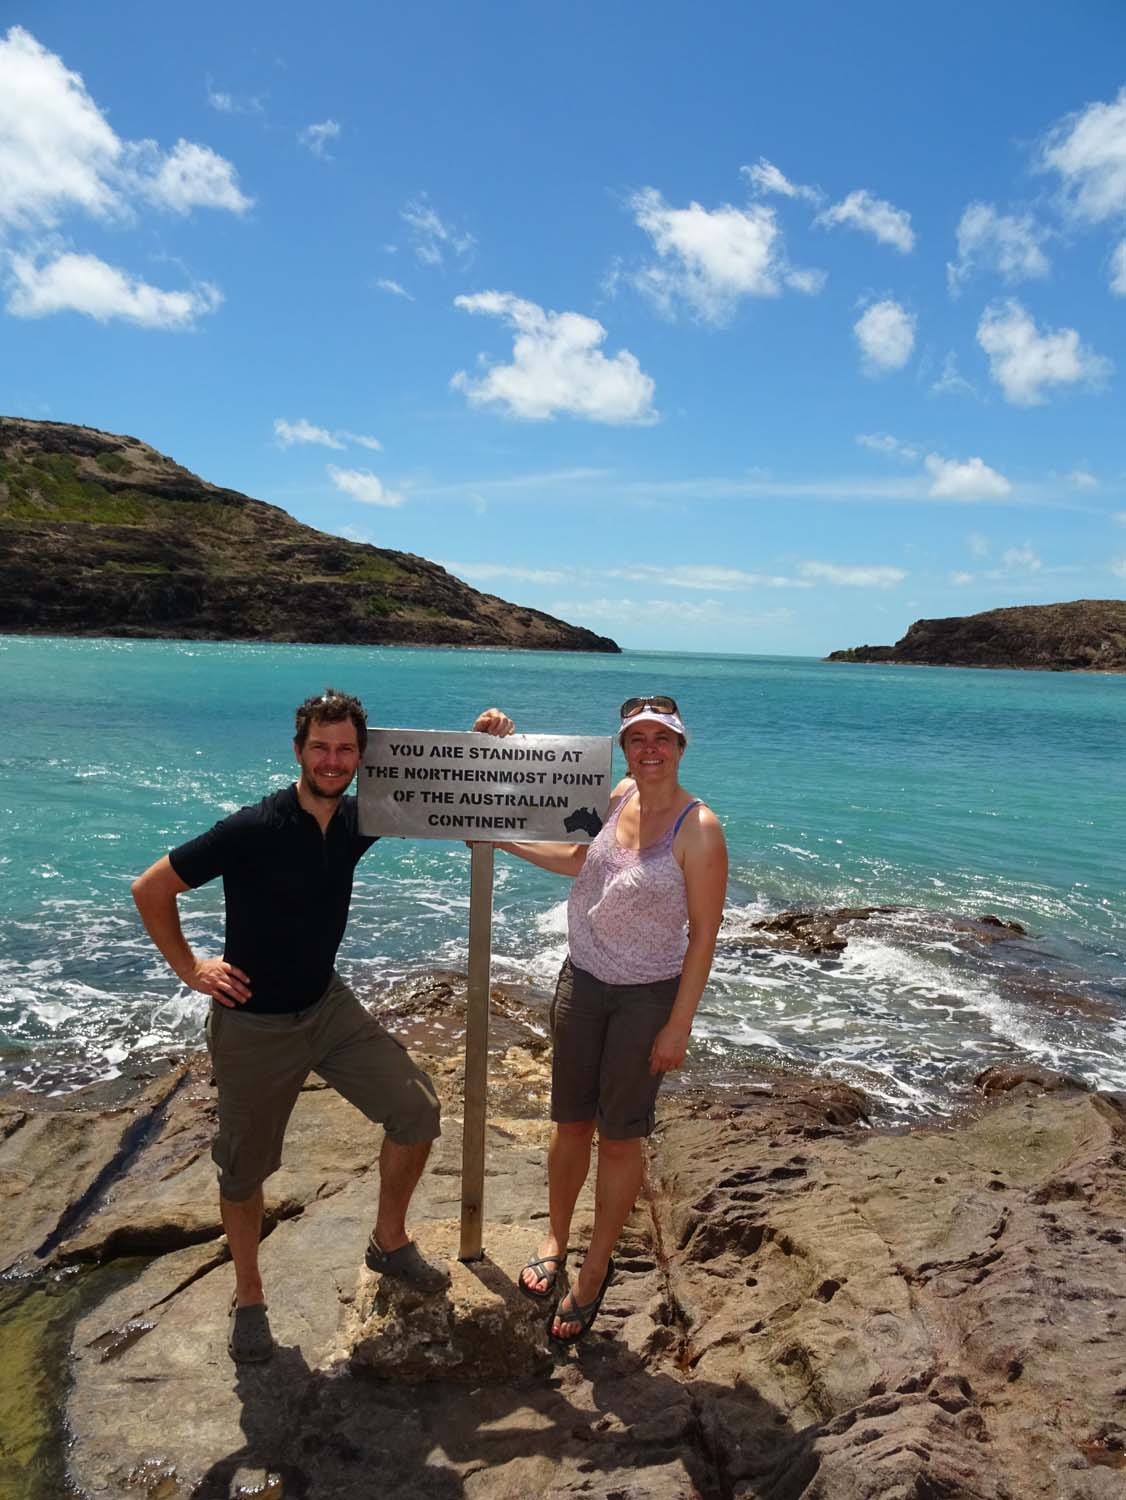 we make it to the Tip, Australia's most northerly point on the main land